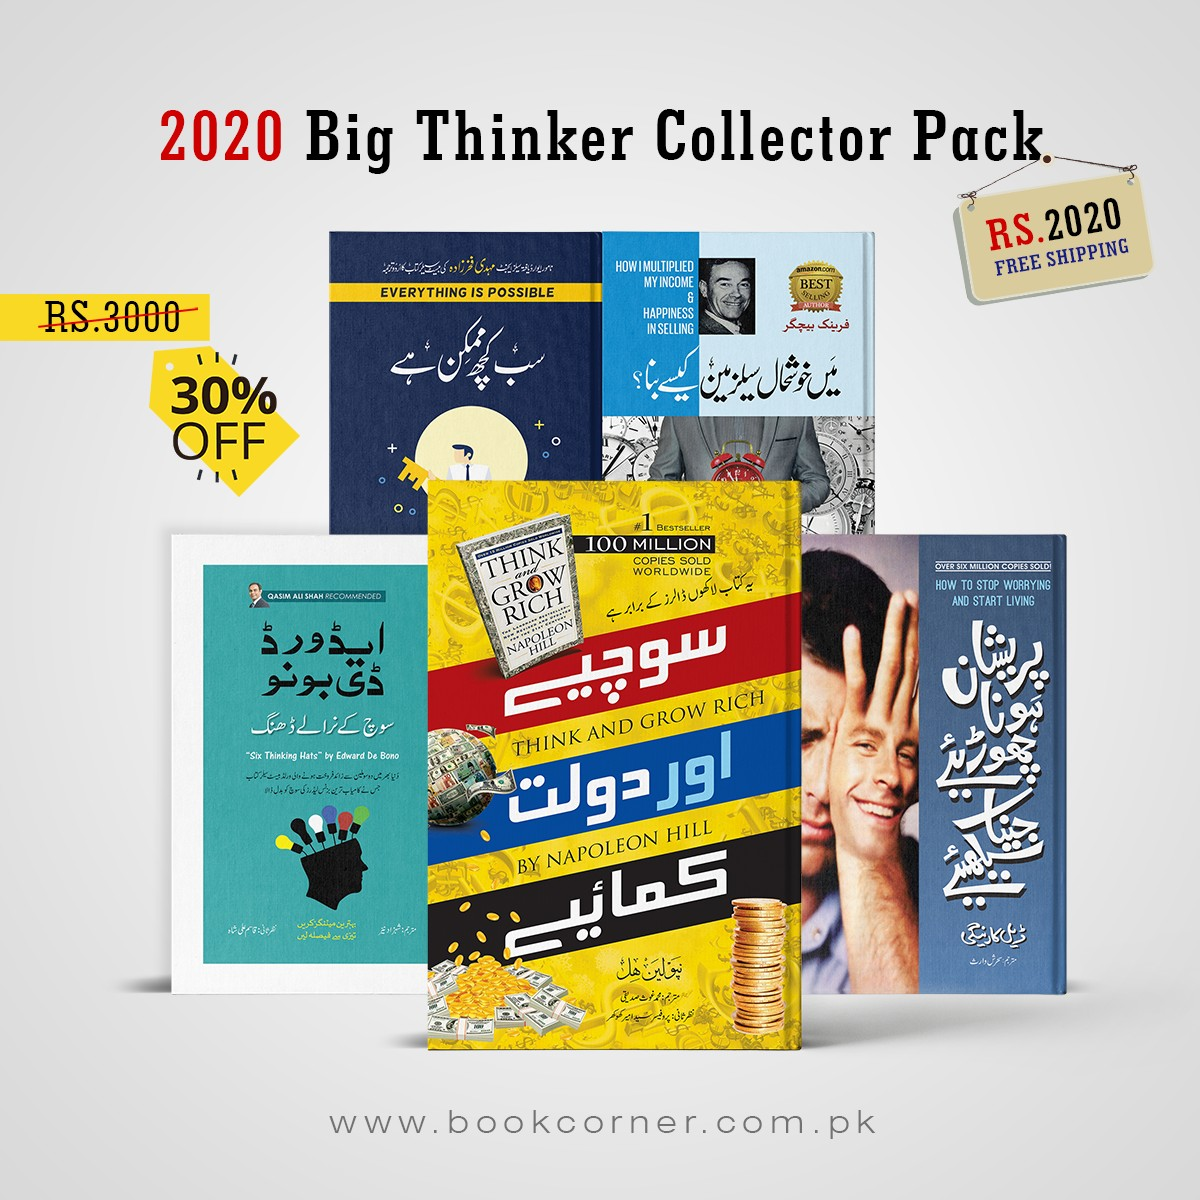 2020 BIG THINKER COLLECTOR PACK (5 BOOKS)